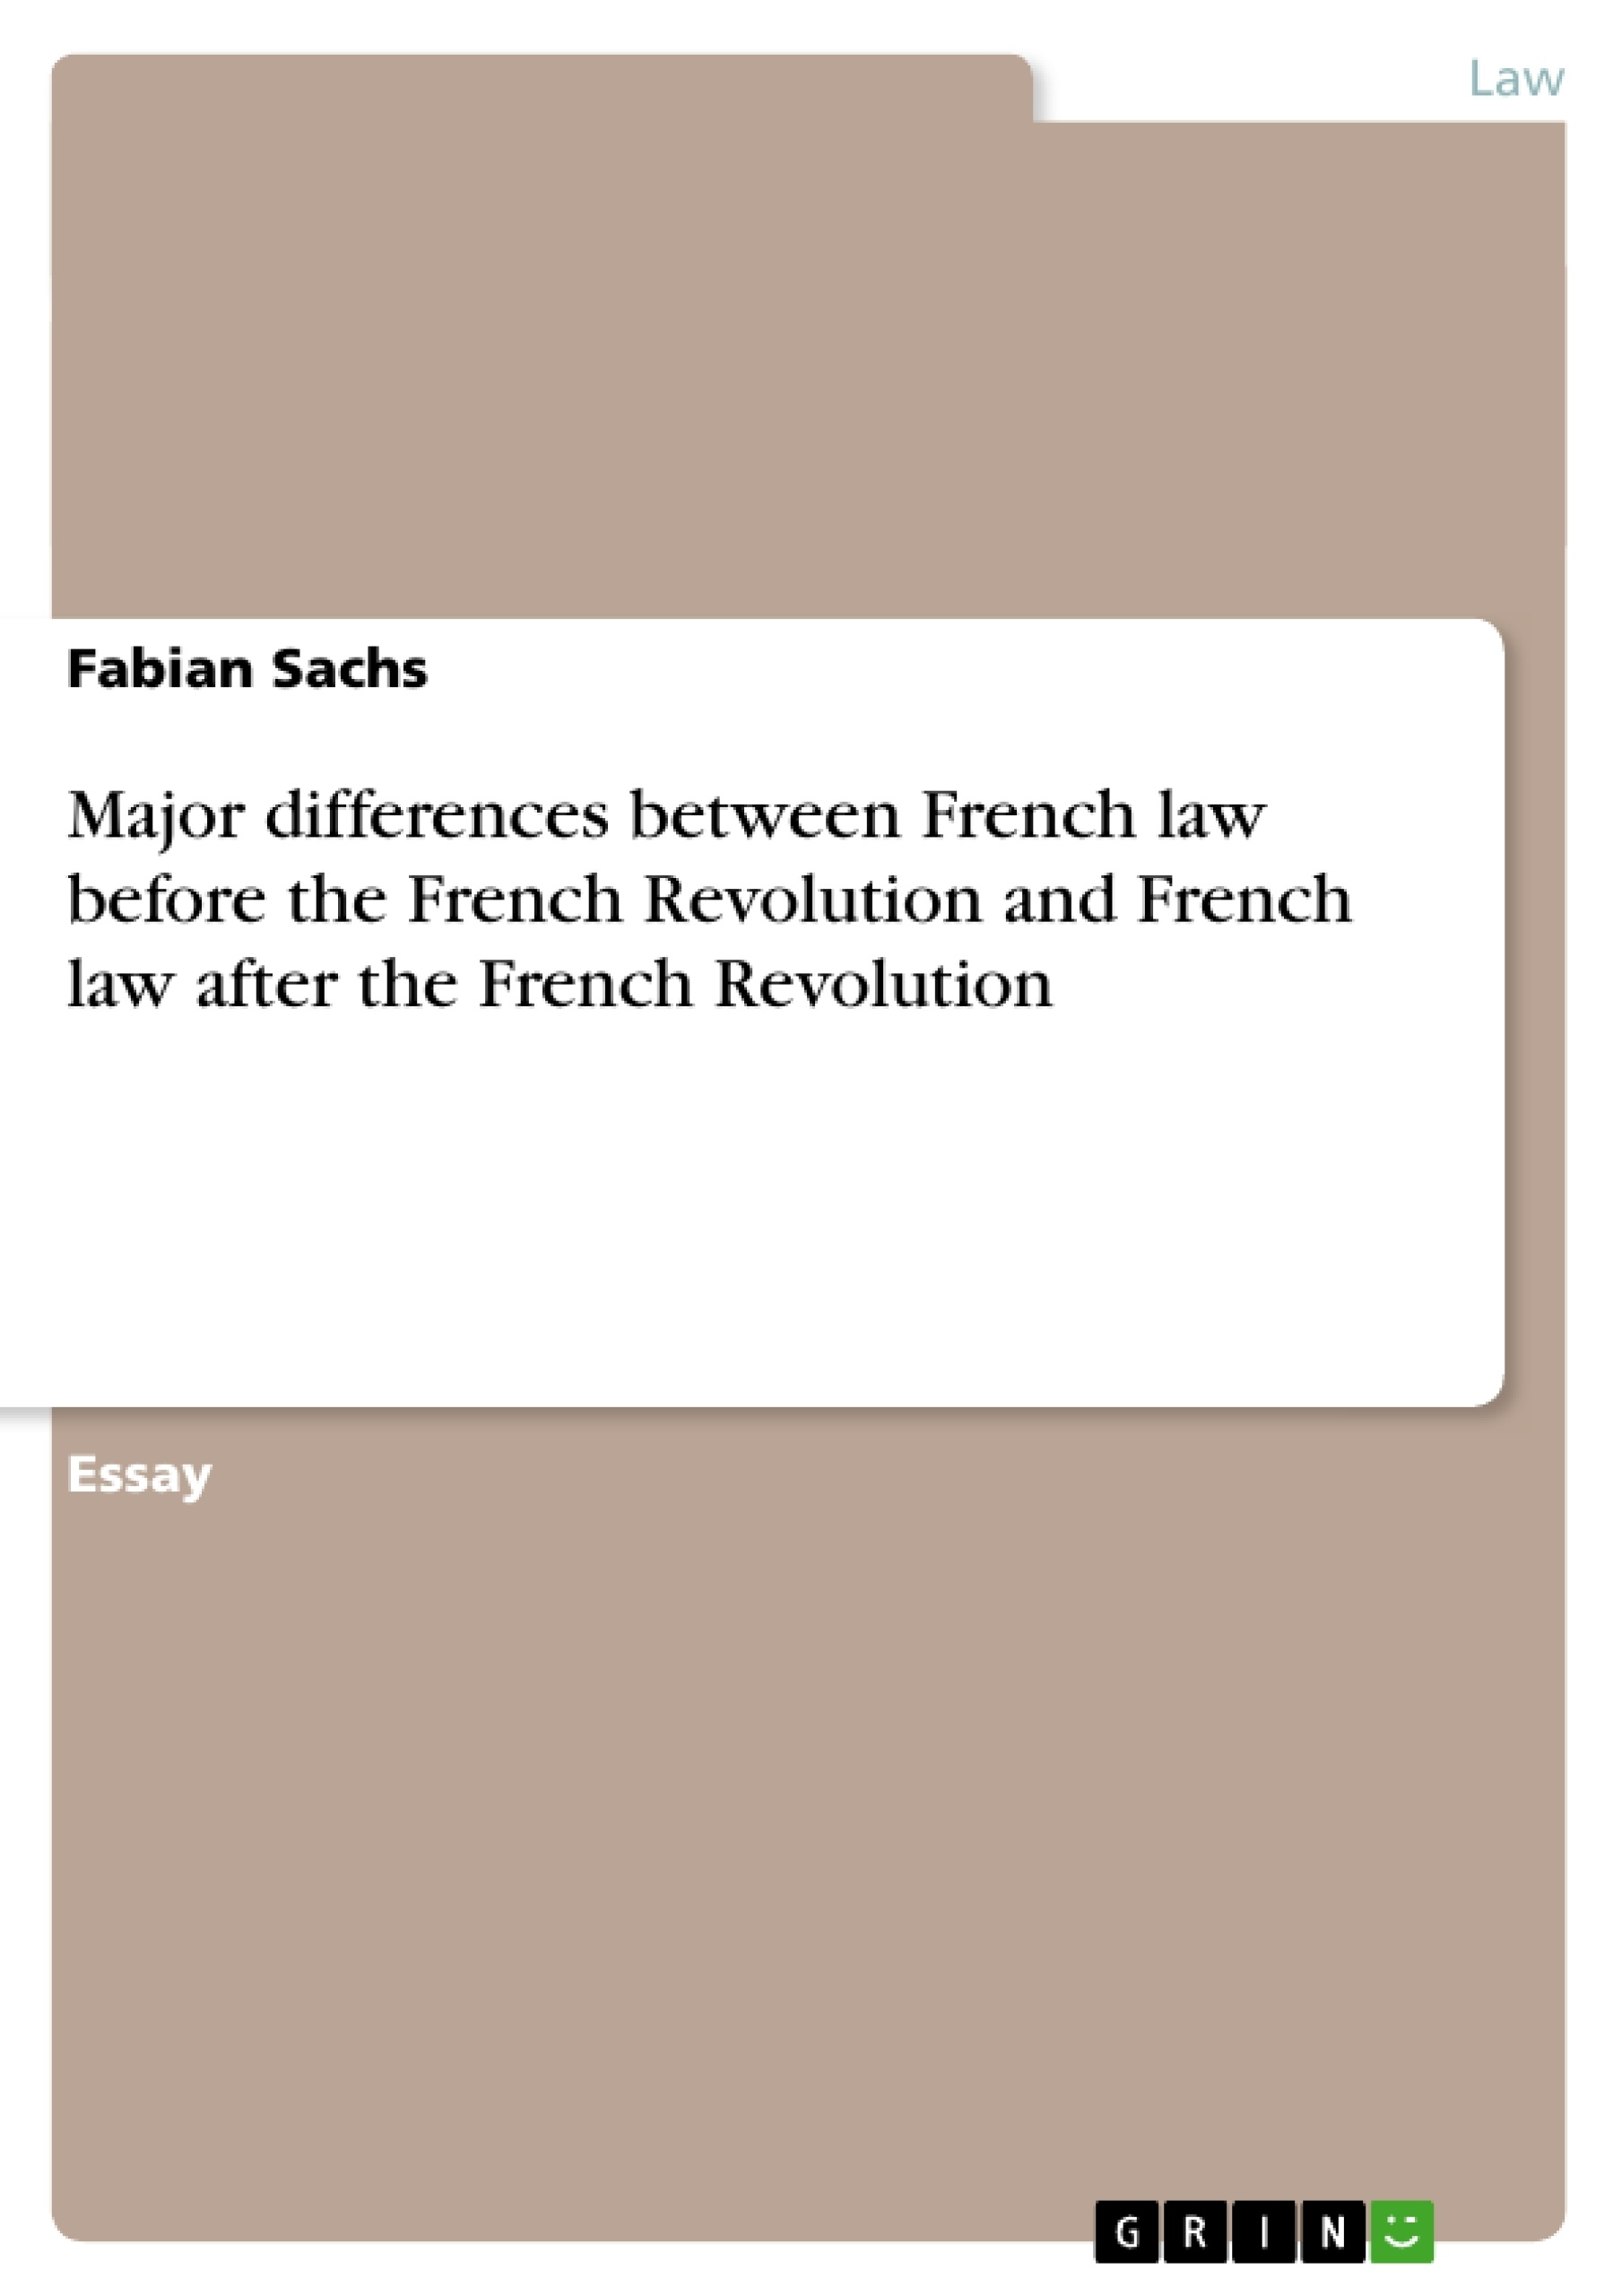 major differences between french law before the french revolution upload your own papers earn money and win an iphone 7